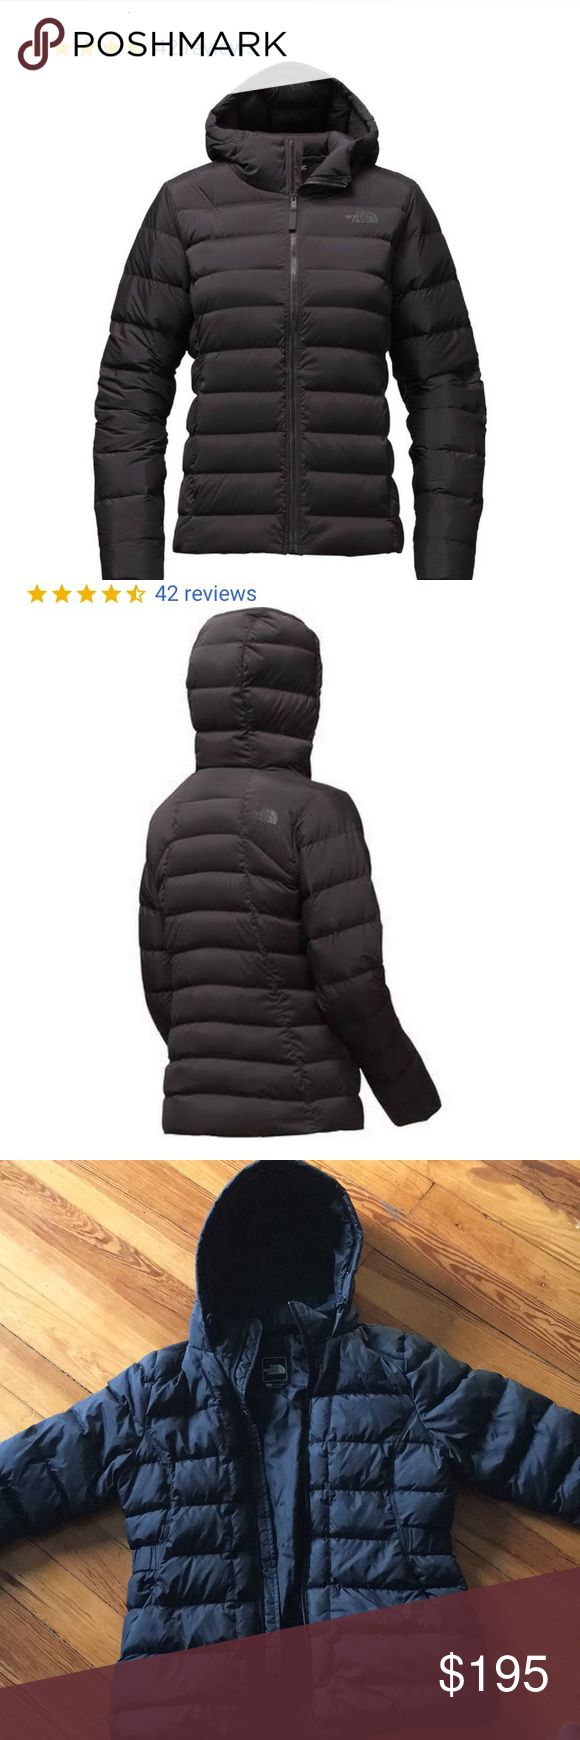 North face black stretch down jacket North face women's black stretch down jacket! Online now for $250 but I bought for $280 from REI!!! Tapered waist for a slimming effect! Size L can fit size M! Goose down jacket perfect for winter received perfect ratings!!! Brand new no flaws The North Face Jackets & Coats Puffers